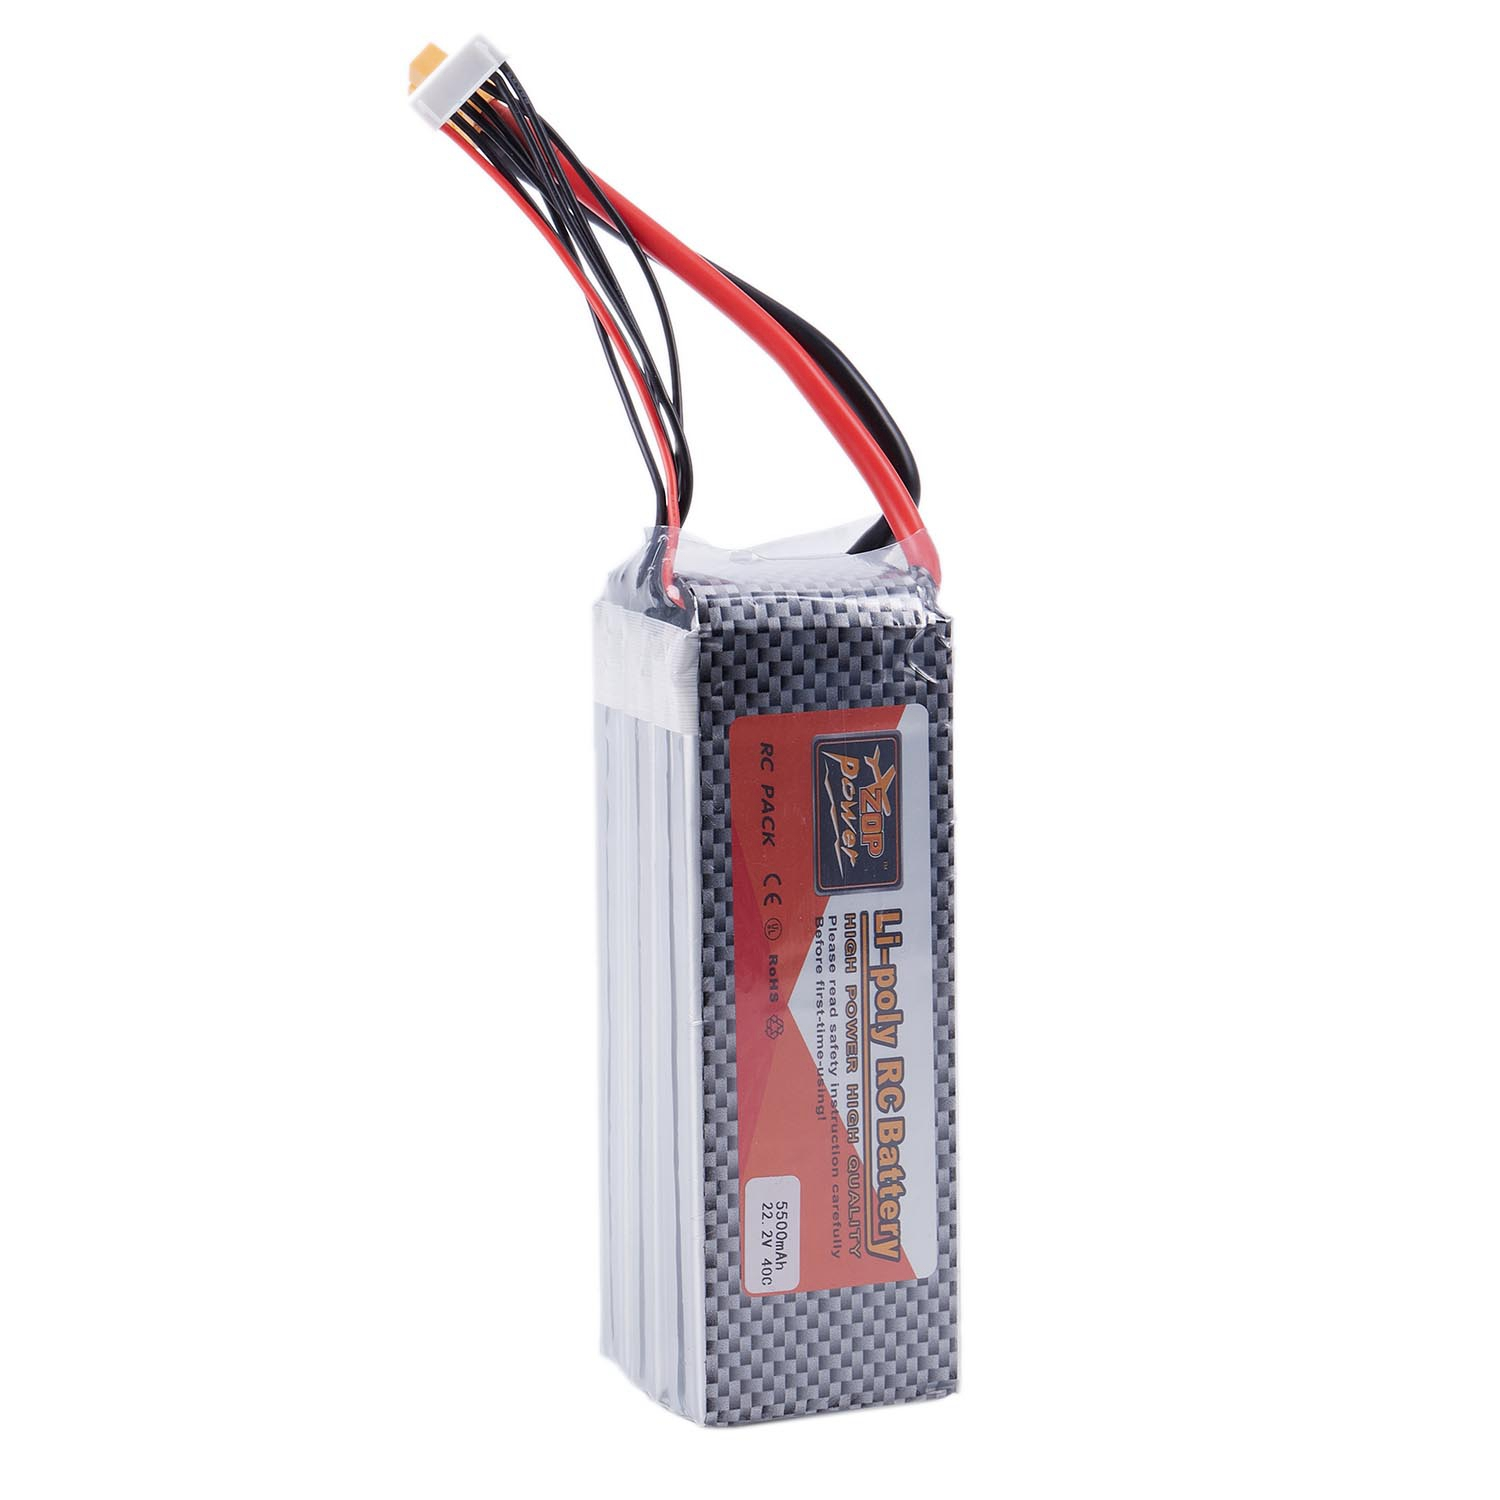 Zop Power 22.2V 6S 5500Mah 40C Xt60 Lipo Battery For Rc Helicopter Quadcopter